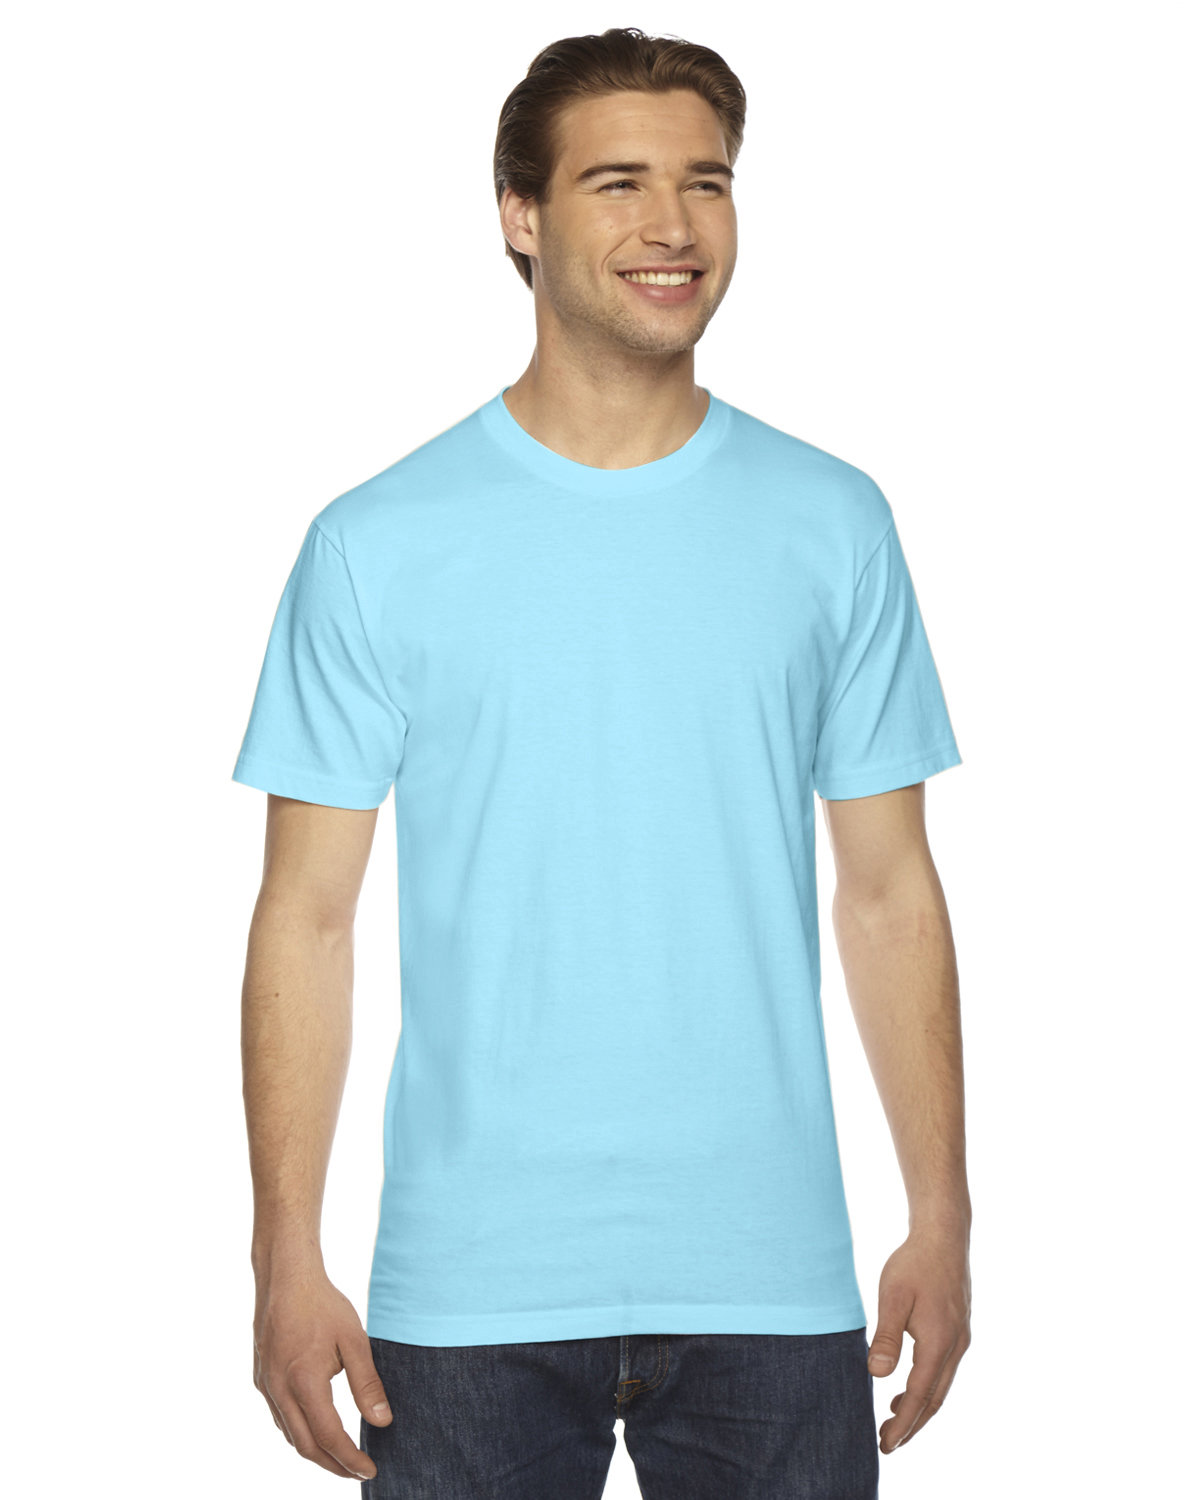 American Apparel Unisex Fine Jersey USA Made T-Shirt AQUA